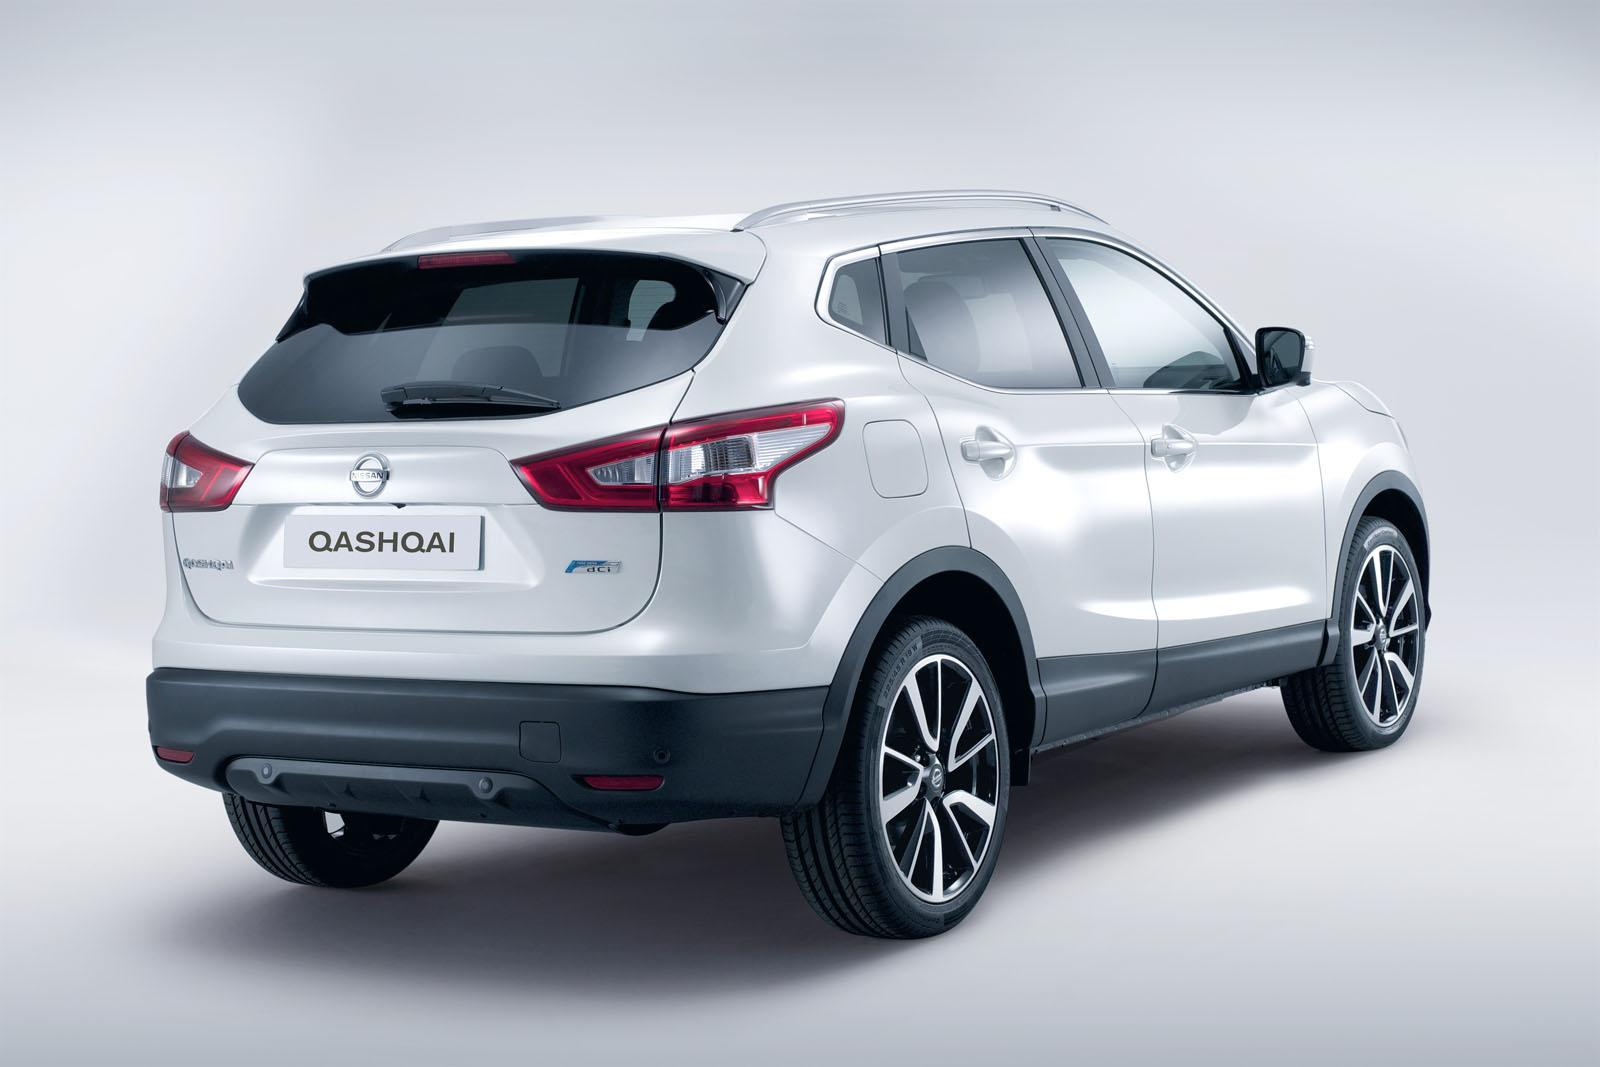 2014 nissan qashqai 4. Black Bedroom Furniture Sets. Home Design Ideas